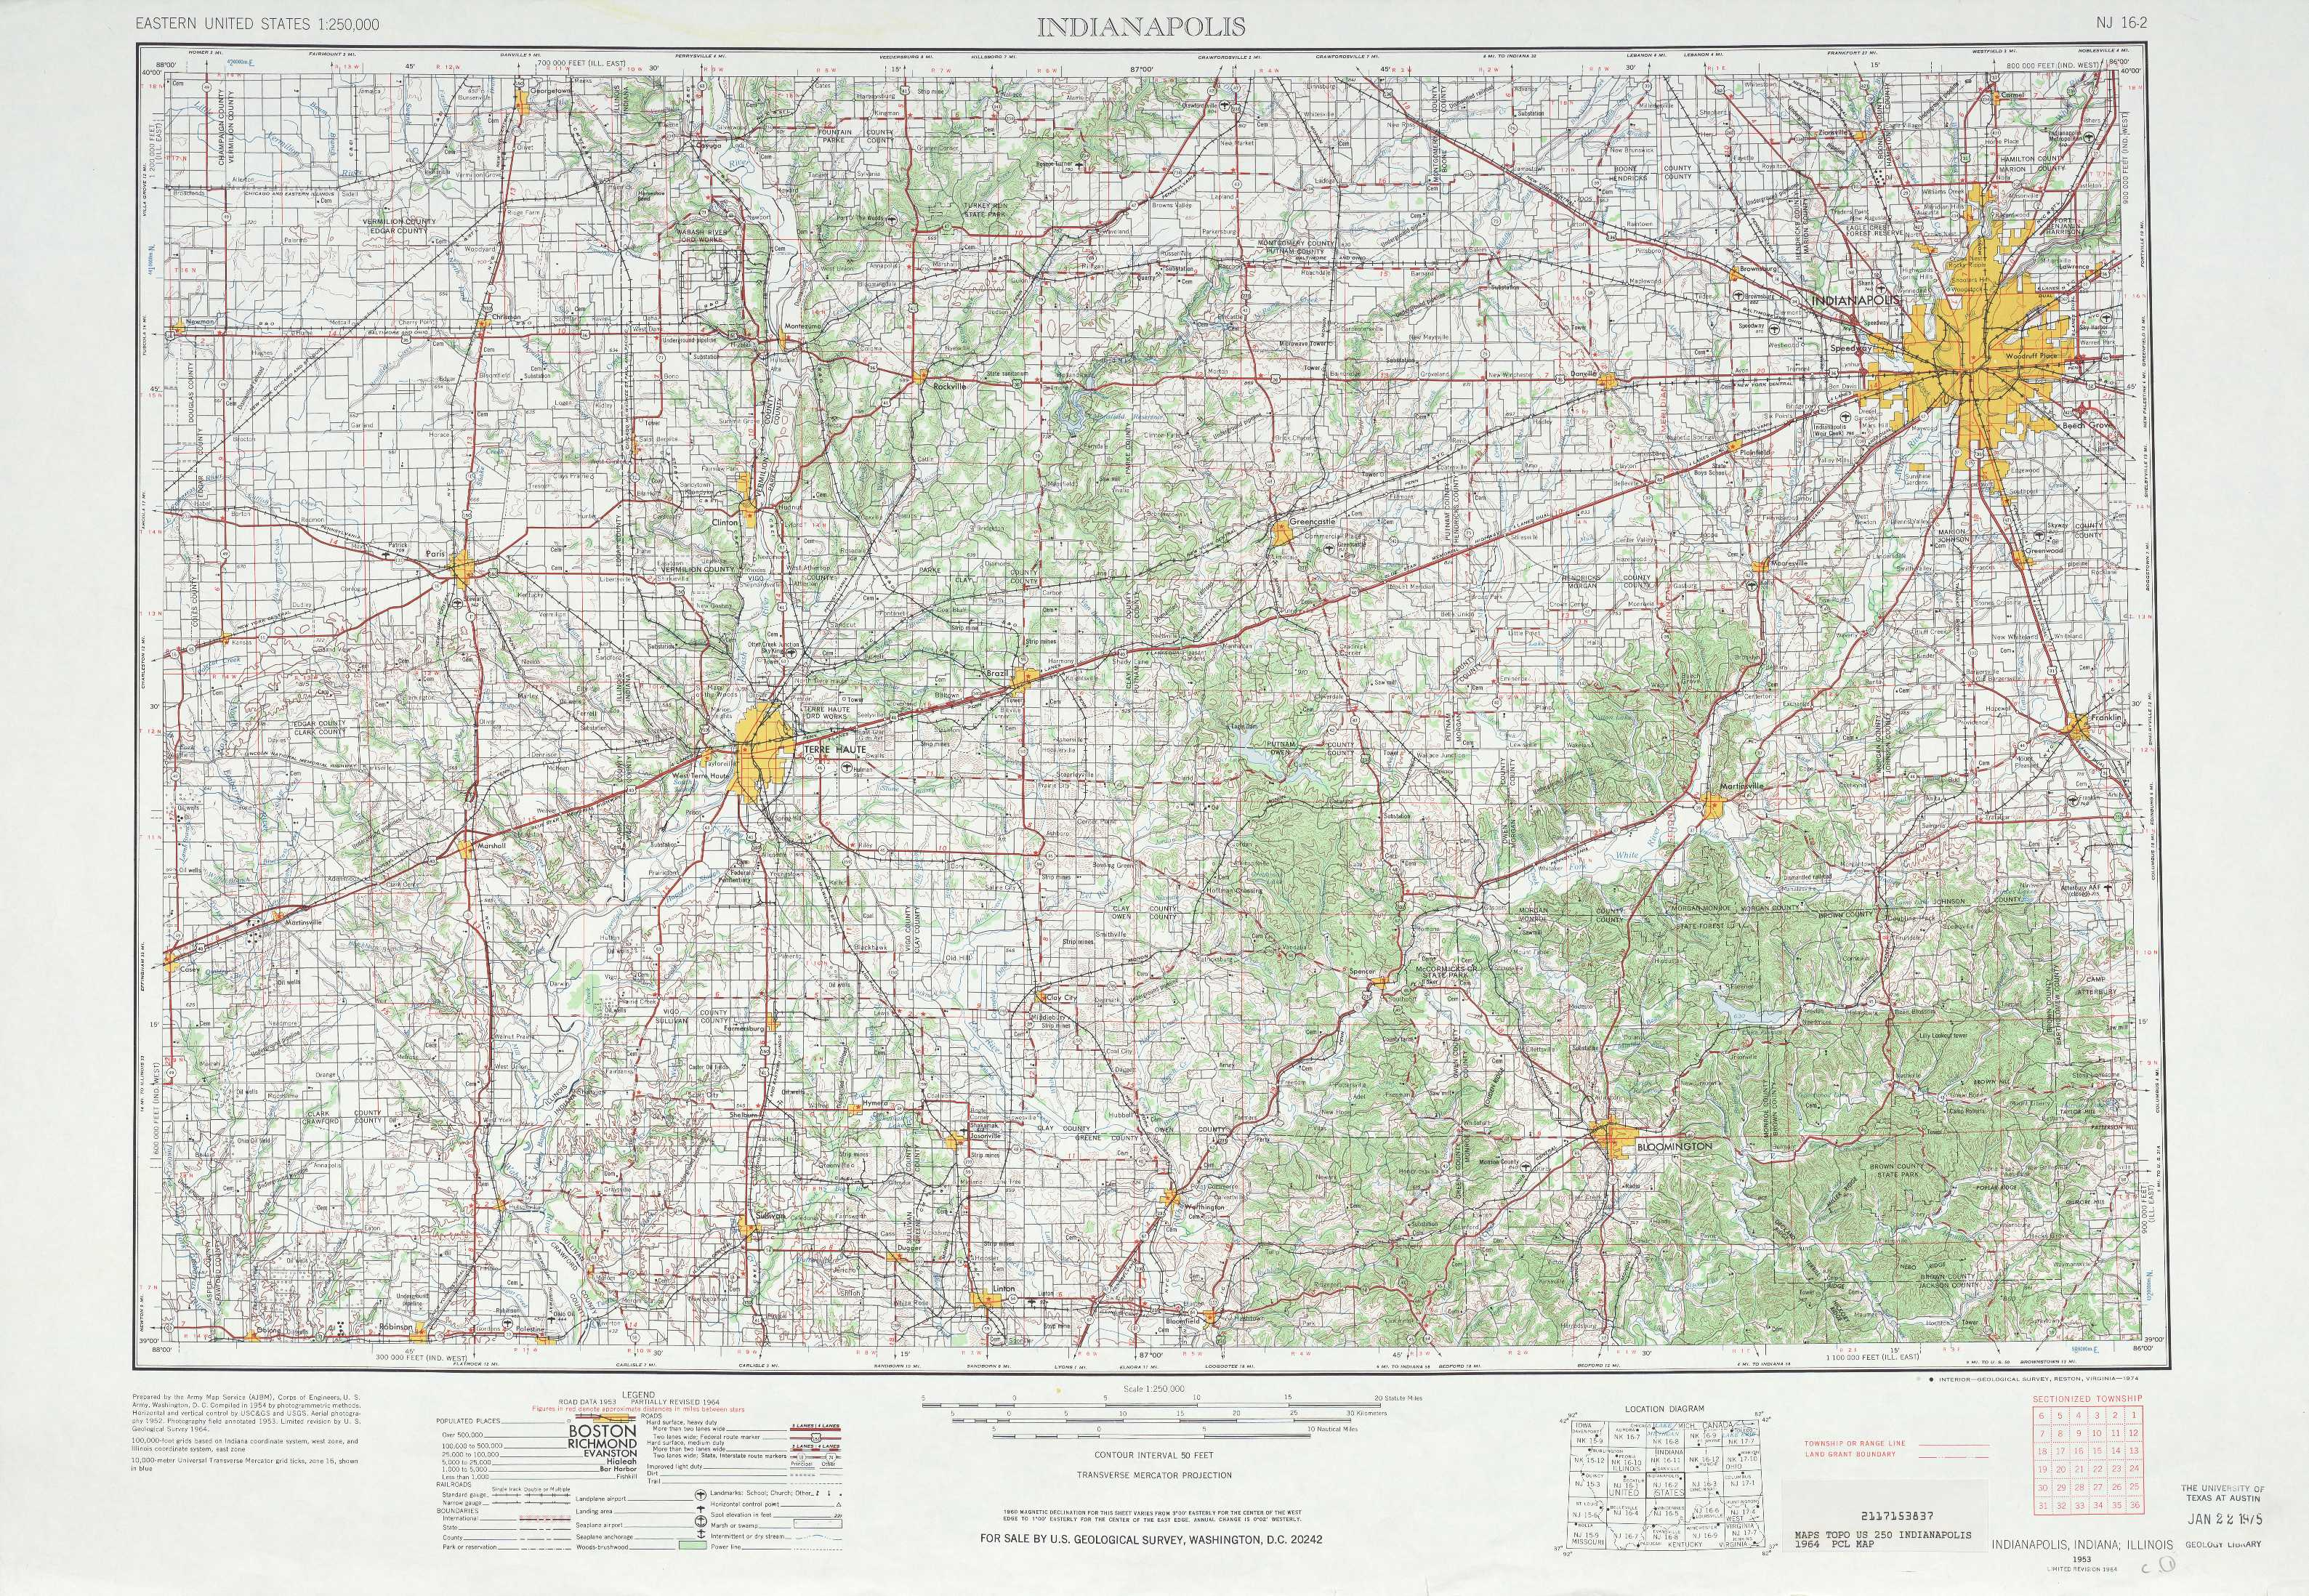 mississippi highway map with 39086a1 on Tn002 furthermore Vermont Road Map in addition Large Scale Roads And Highways Map Of Minnesota State With National Parks And Cities furthermore World Map 1492 in addition Belize Satellite Image.